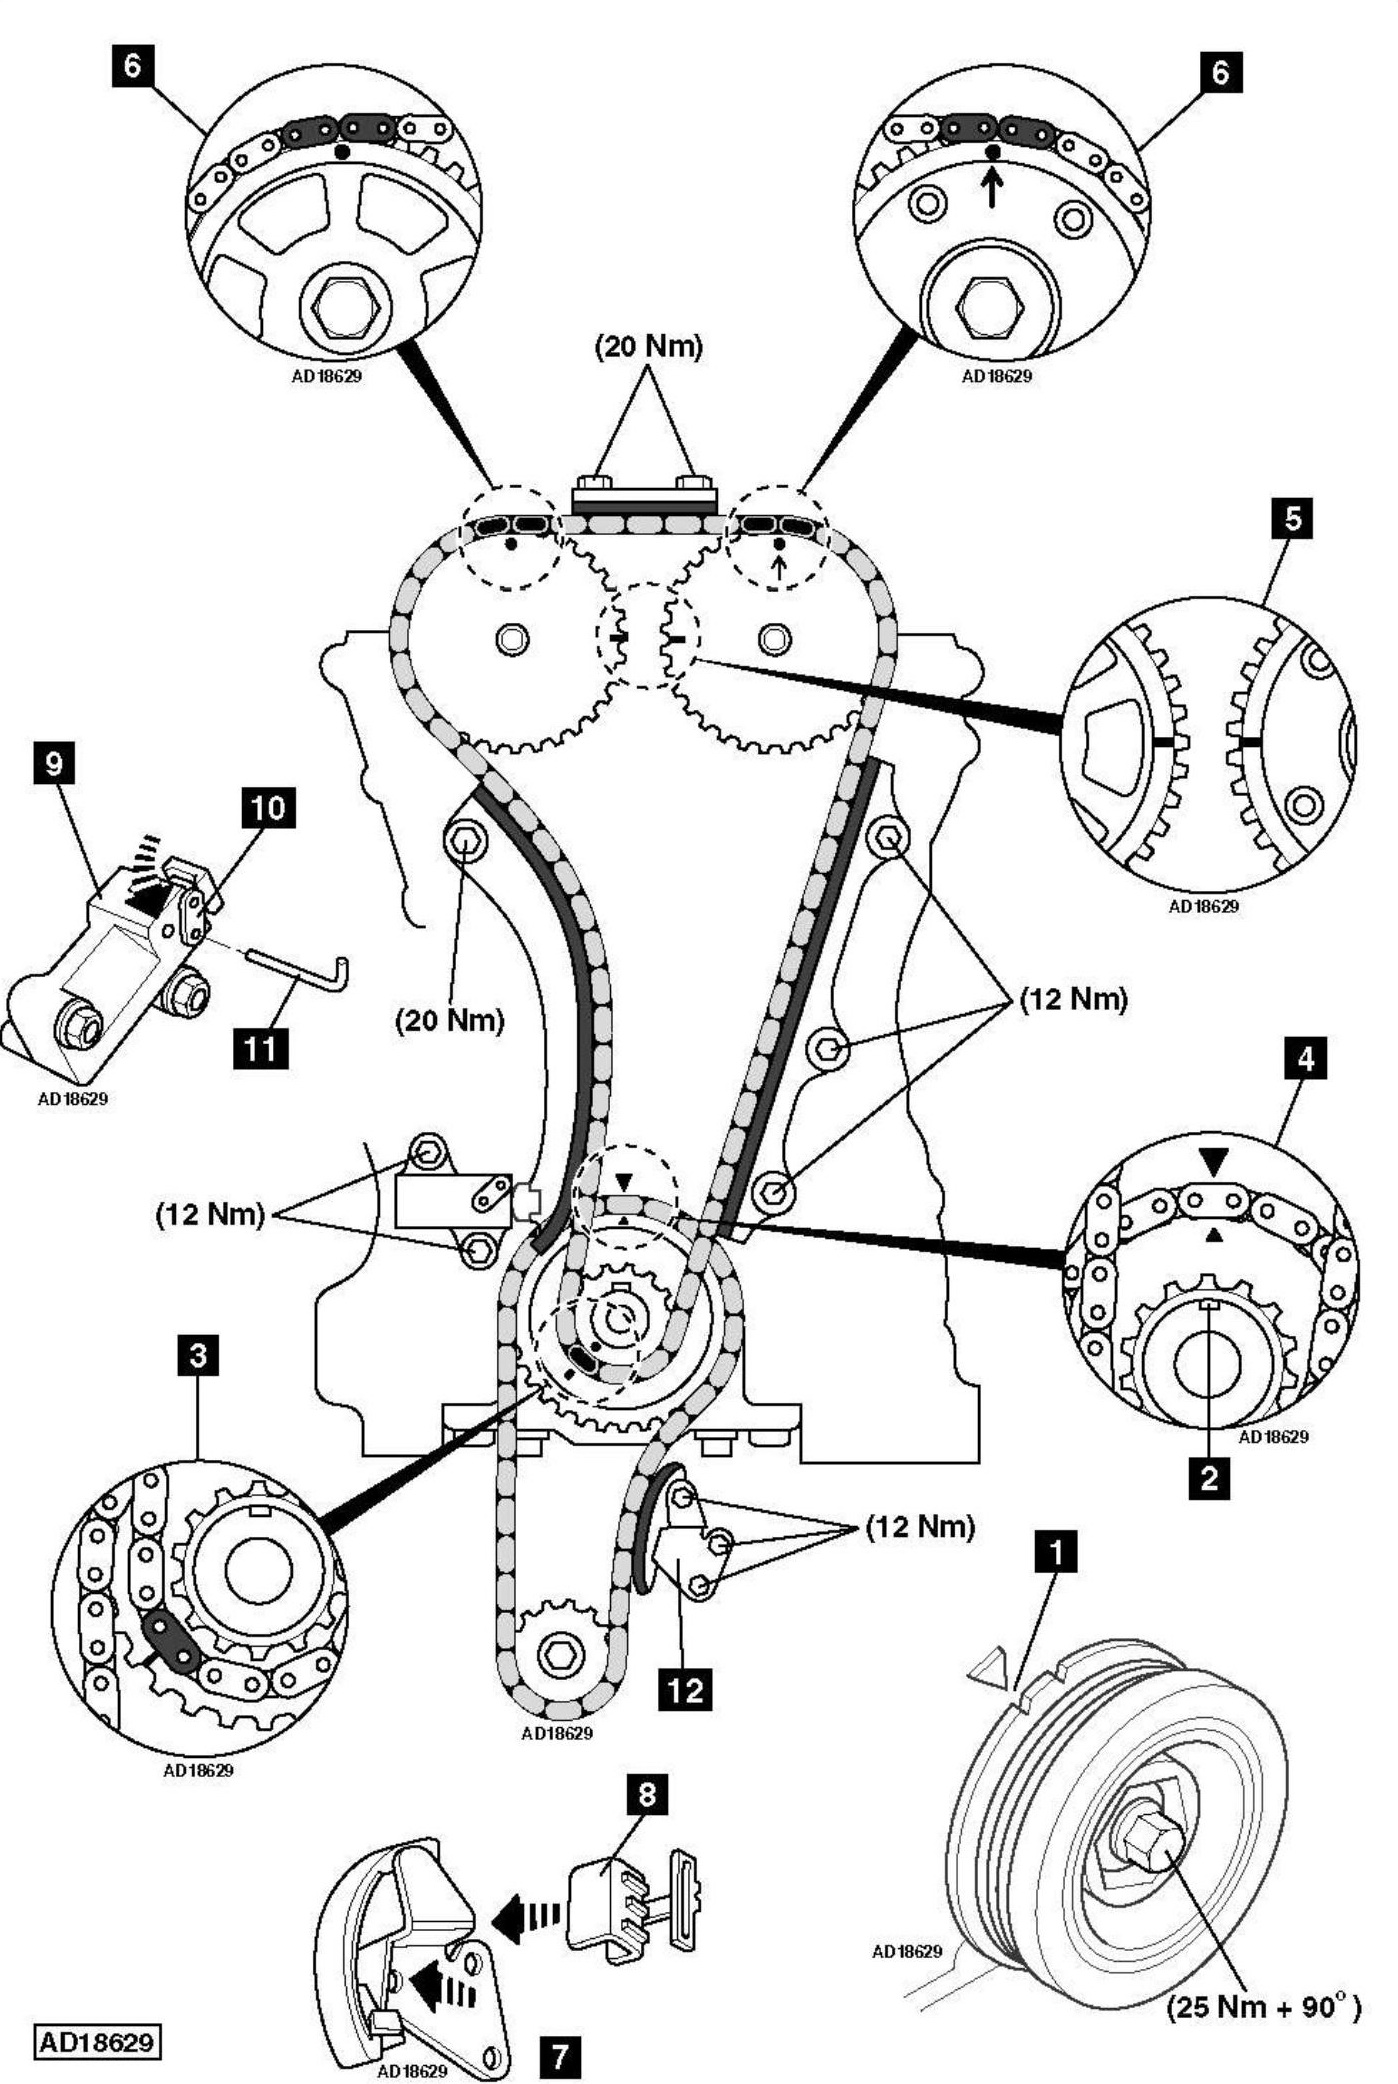 hight resolution of timing belt change honda accord best cars modified dur a 04 focus 2 0 belt routing 02 ford focus belt diagram 2 0 engine